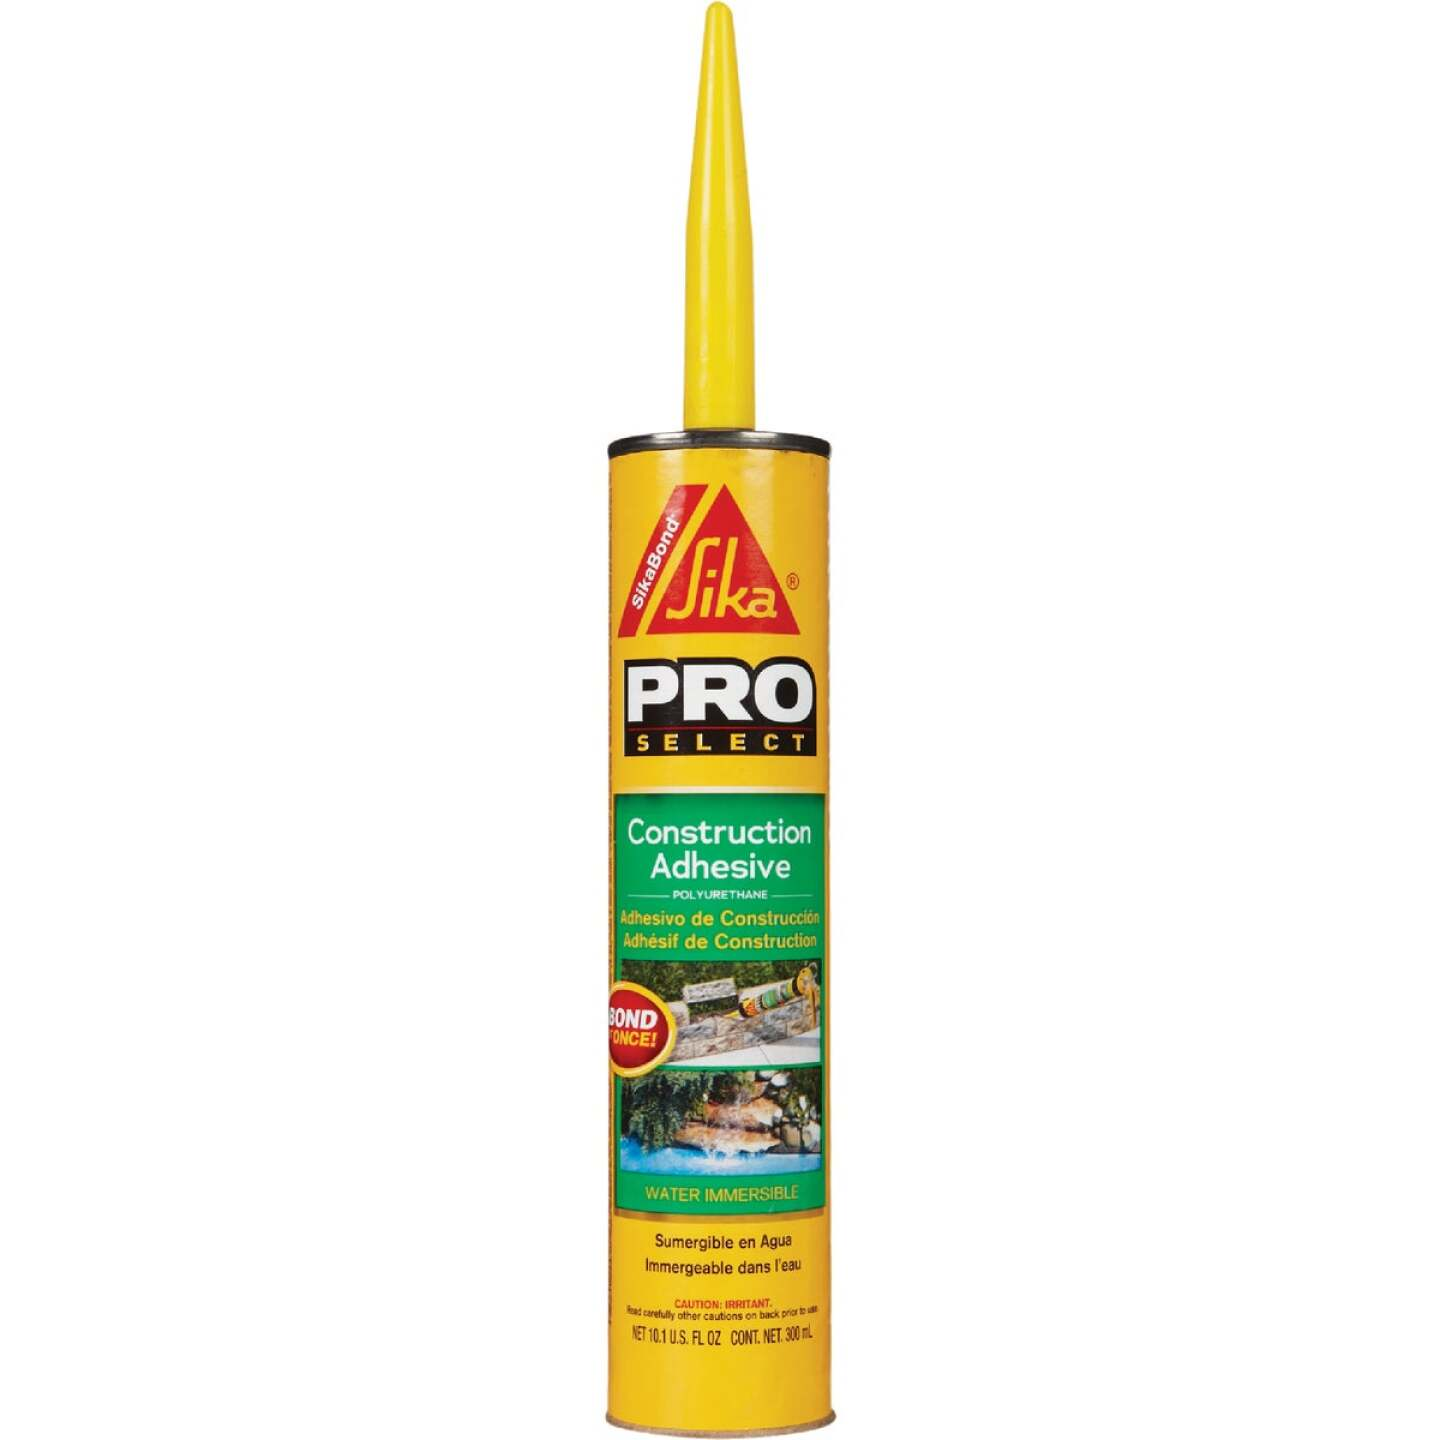 SikaBond Pro Select 10 Oz. High Performance Construction Adhesive Image 1